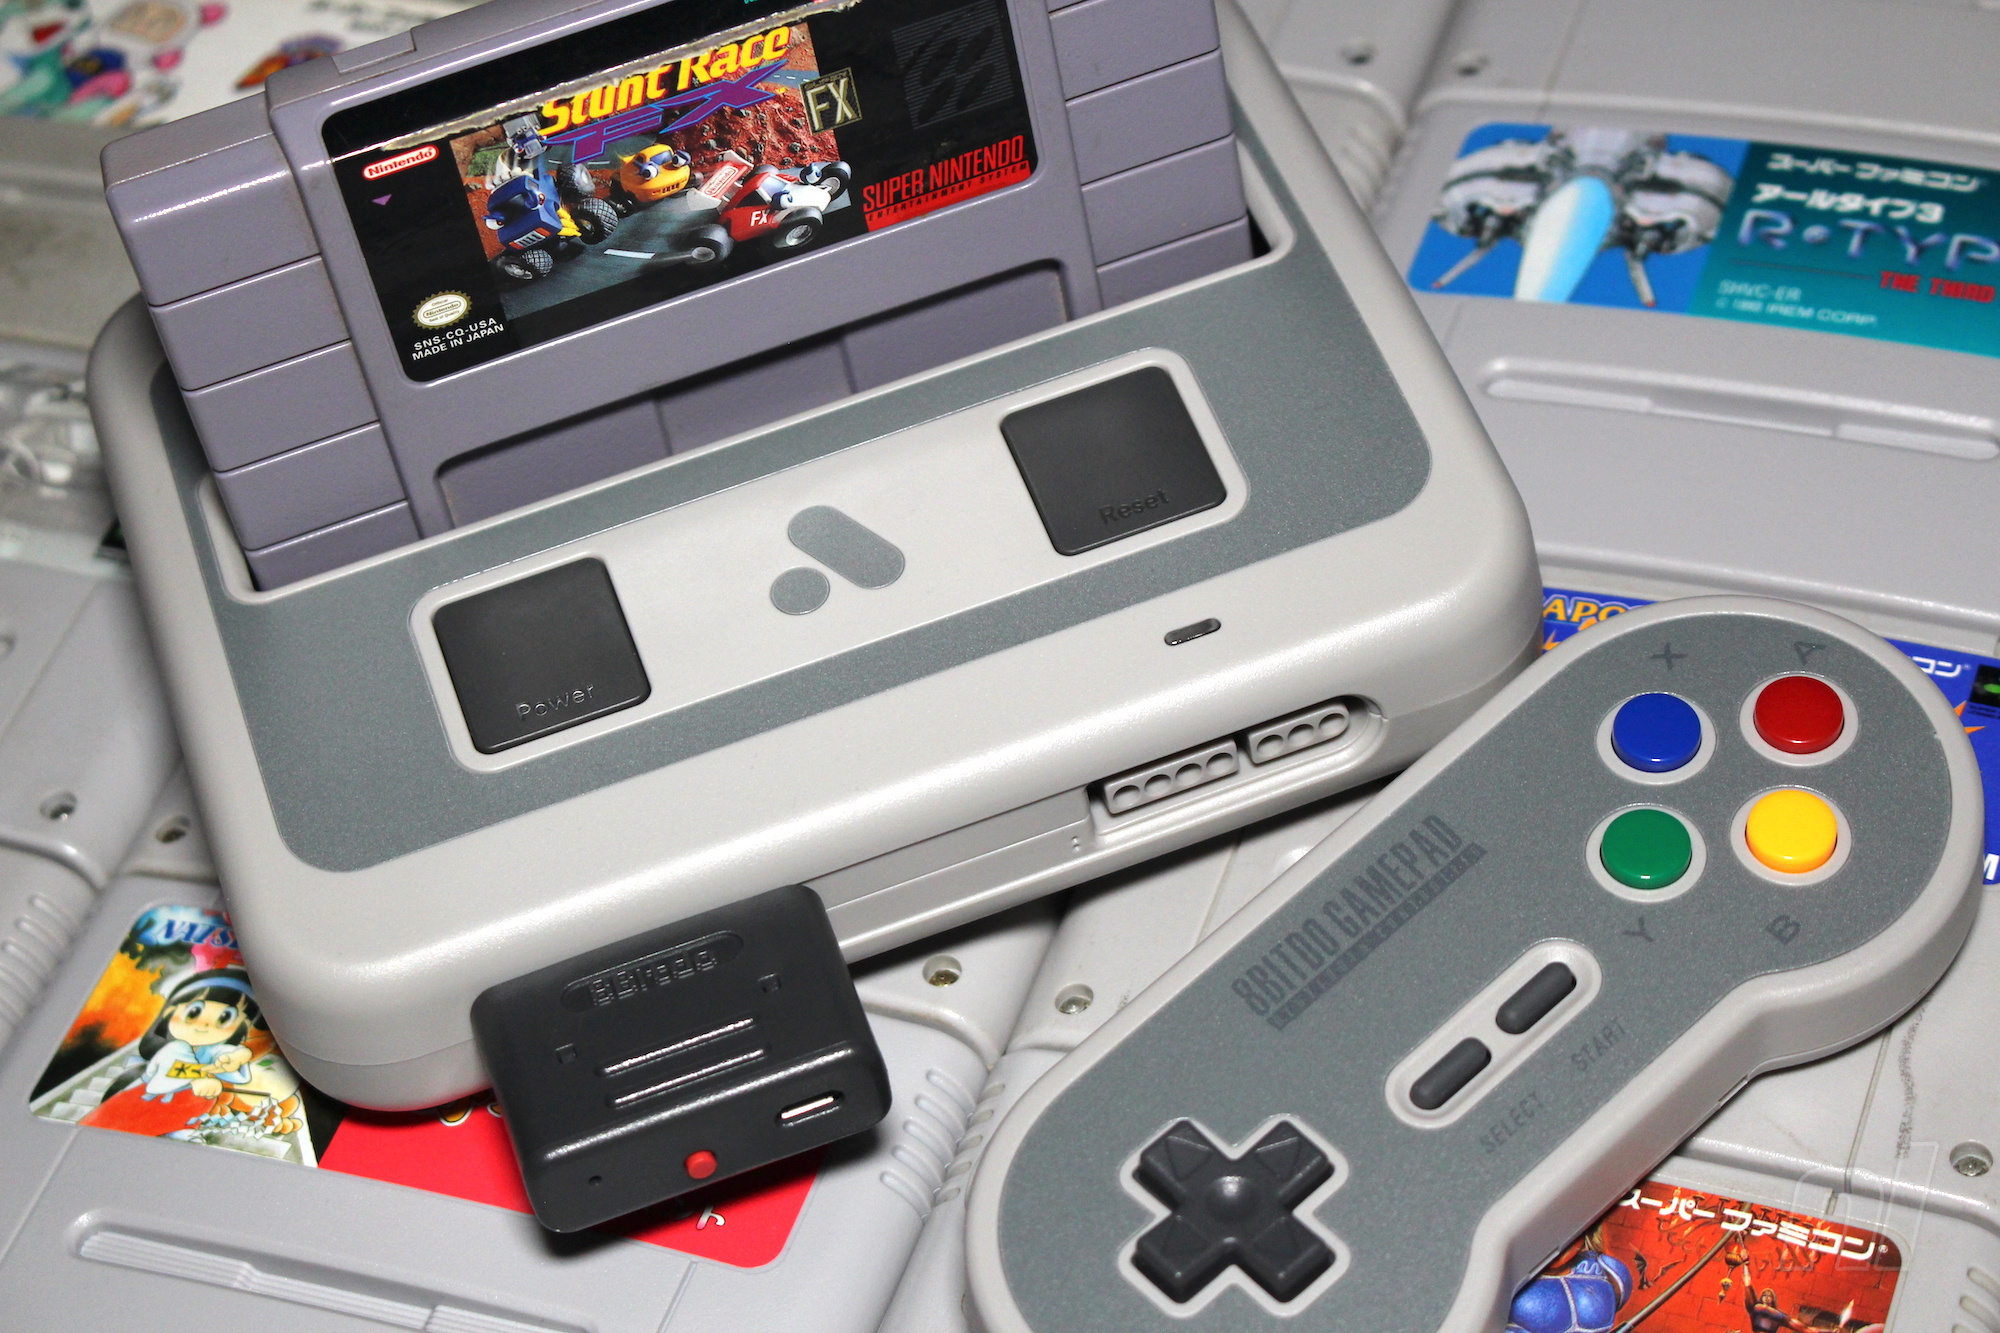 Hardware Review: The Analogue Super Nt Is The Ultimate Way